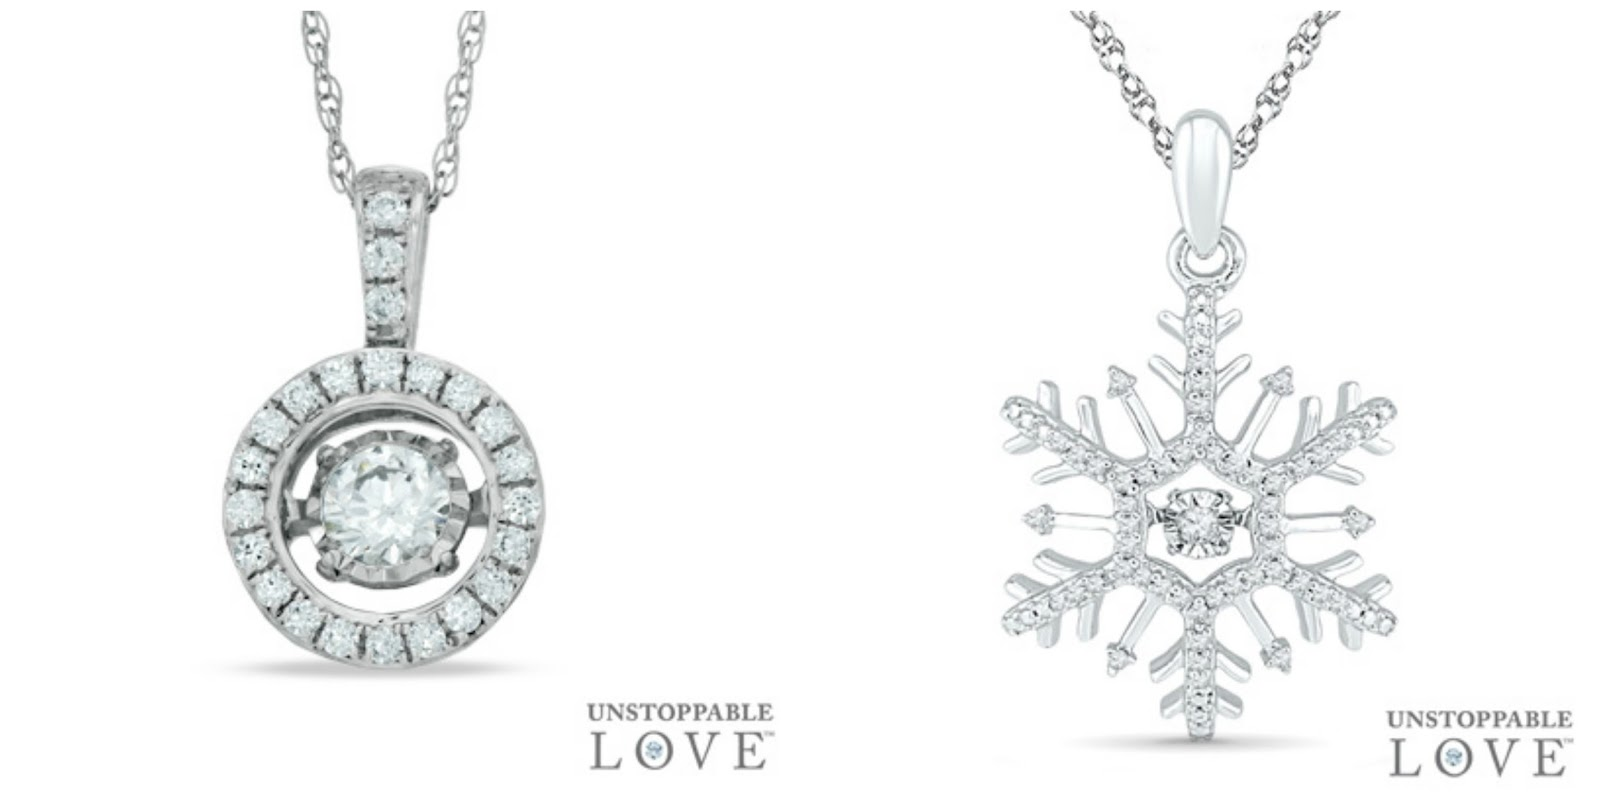 The Endless Brilliance Collection At Zales Includes A Beautiful Selection Of Diamond Rings Pendants And Earrings That Deliver Many Diamonds Lots